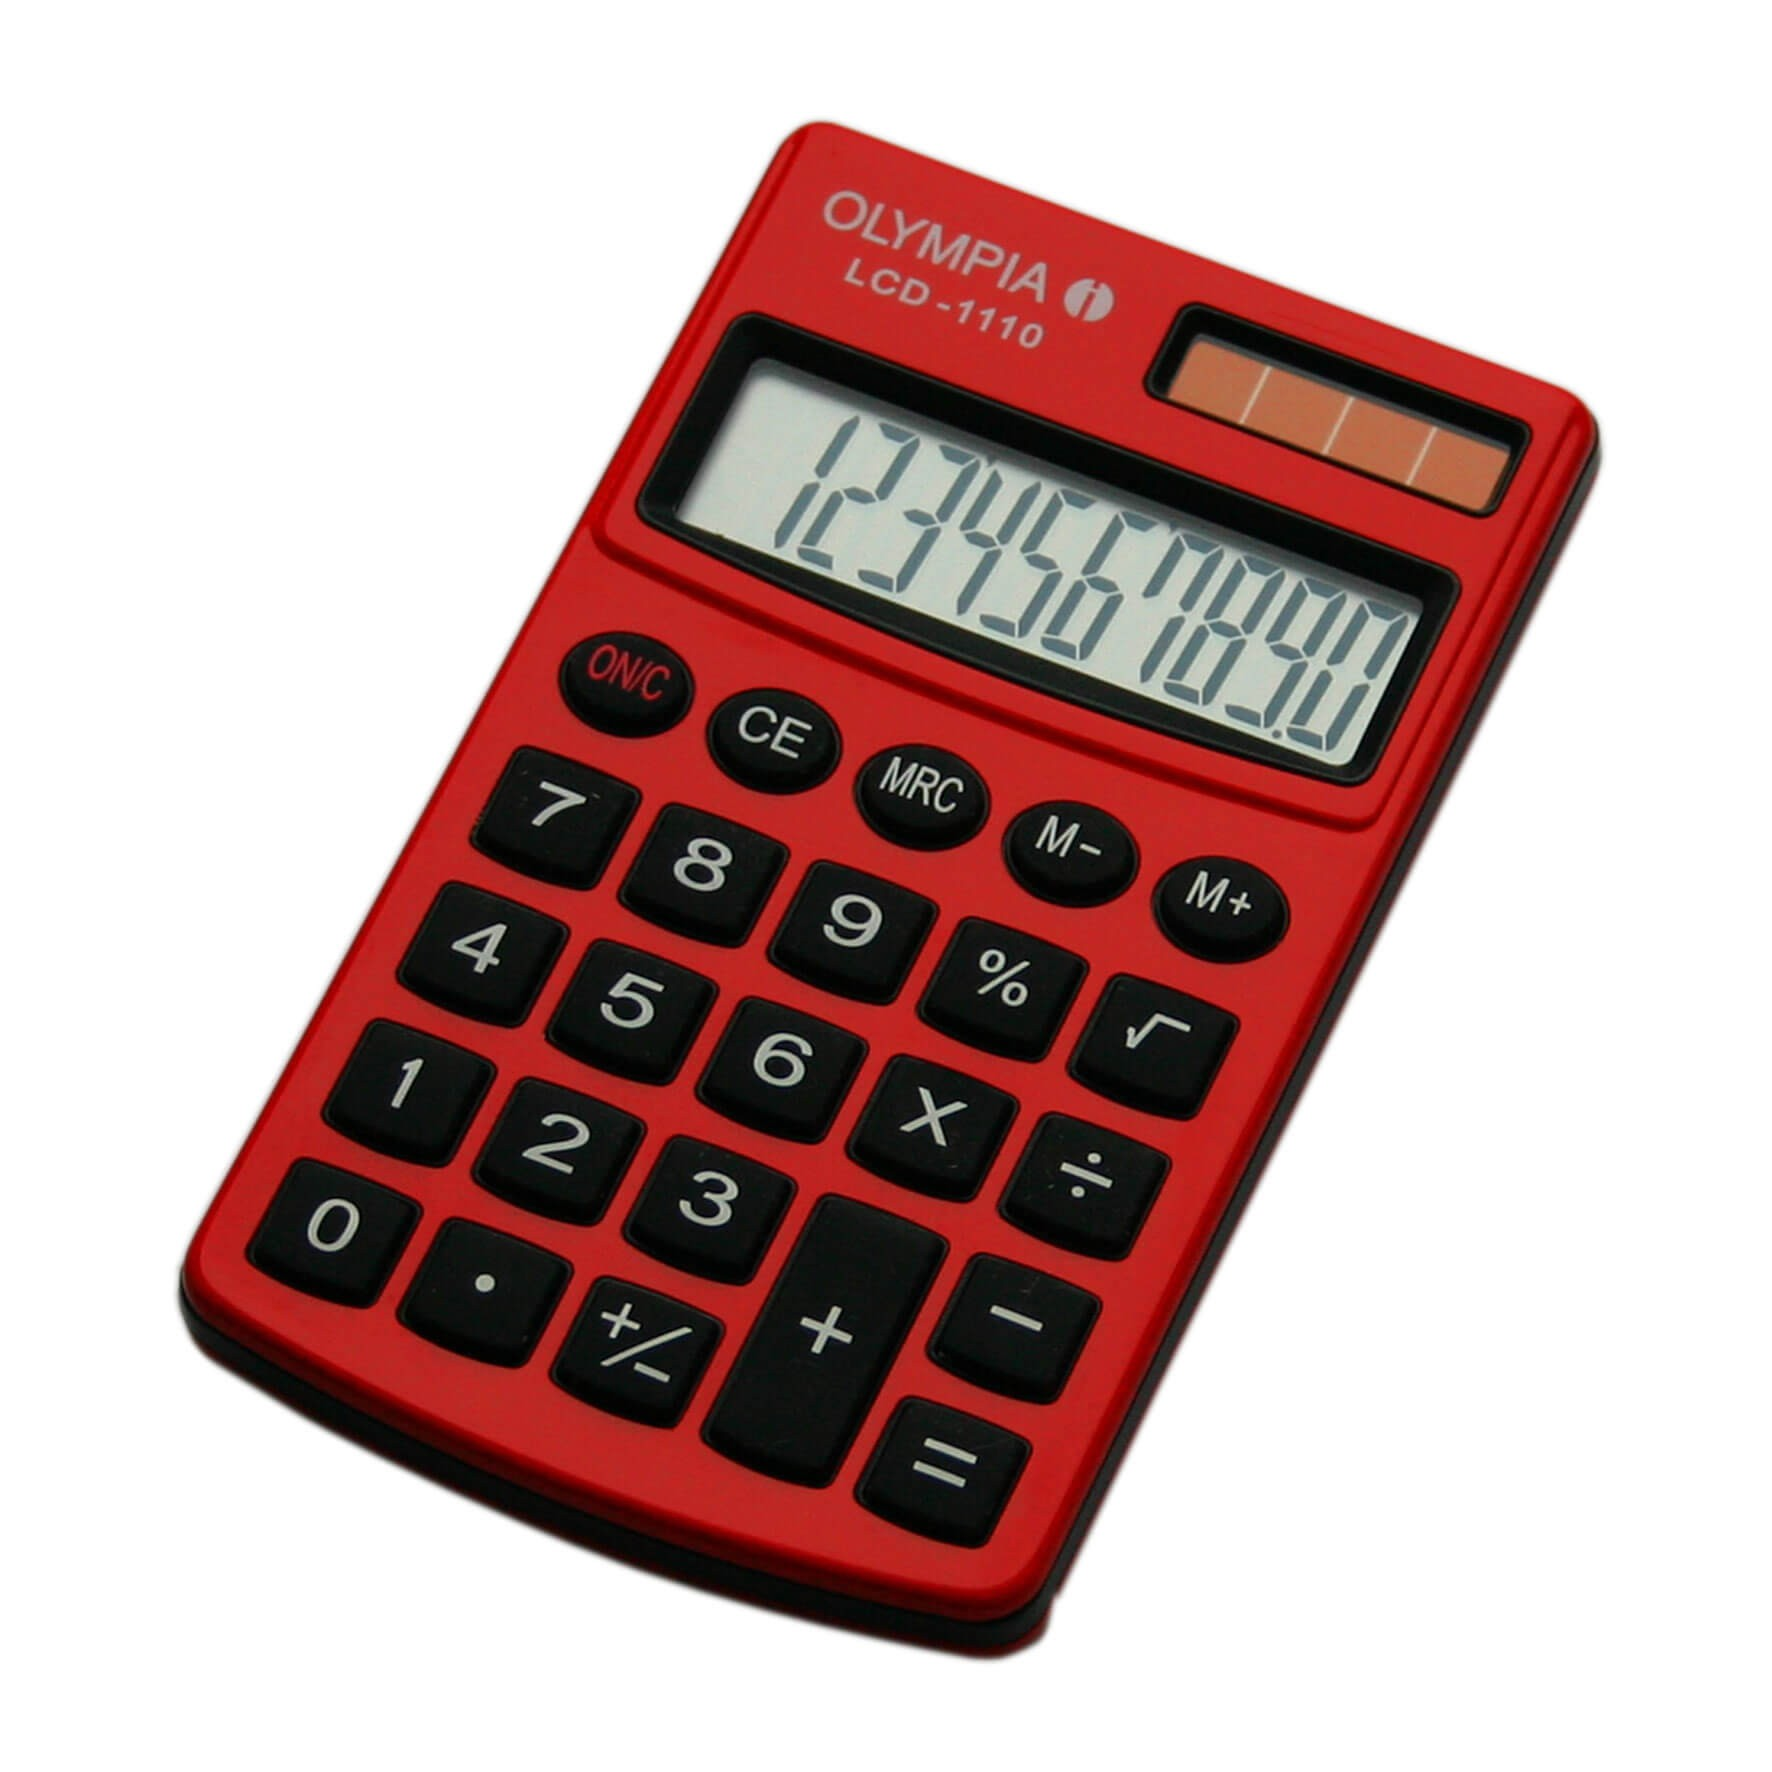 Olympia Pocket LCD - 1110 Calculator, 10 Digits, Red in Dubai & Abu ...